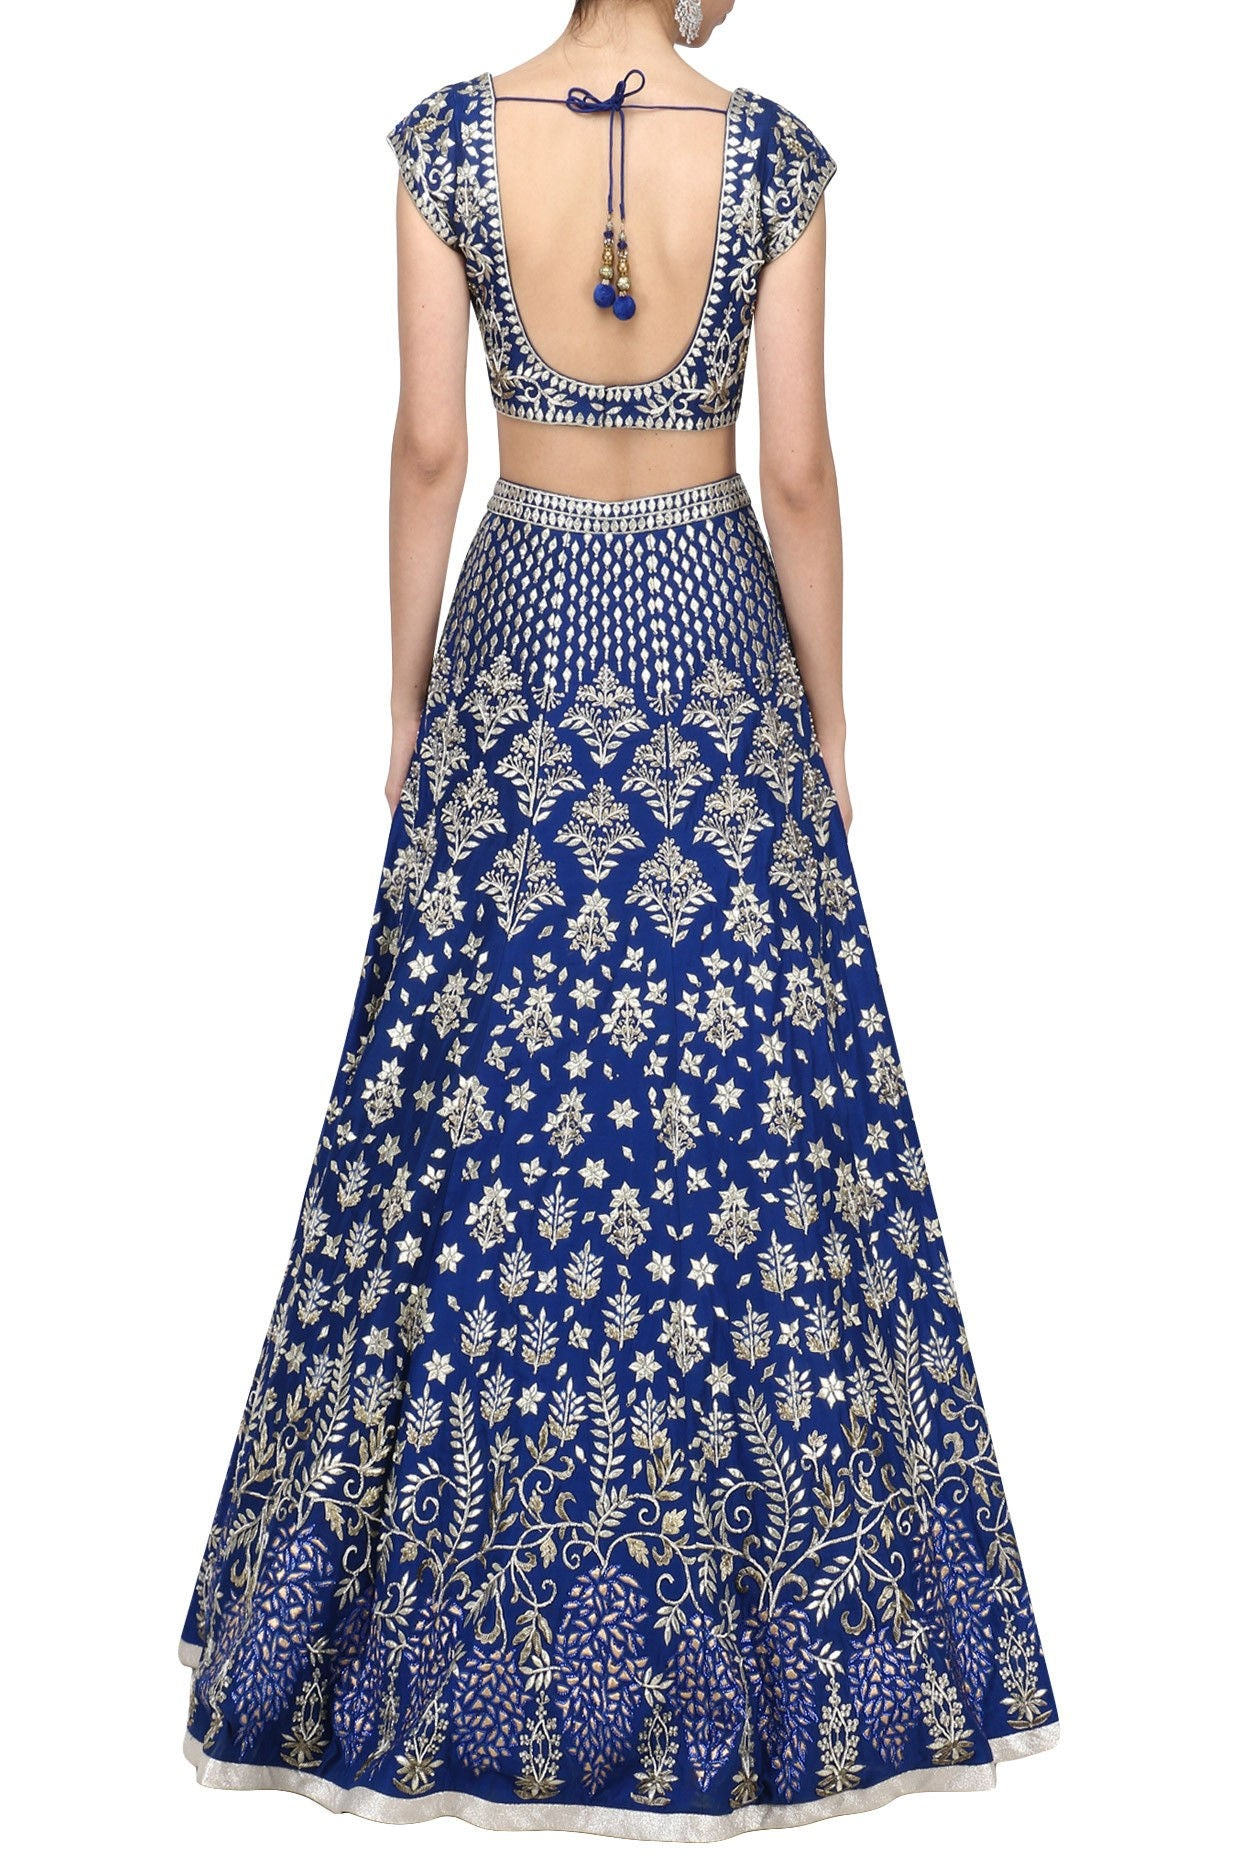 Bright Blue Color Lehenga Choli